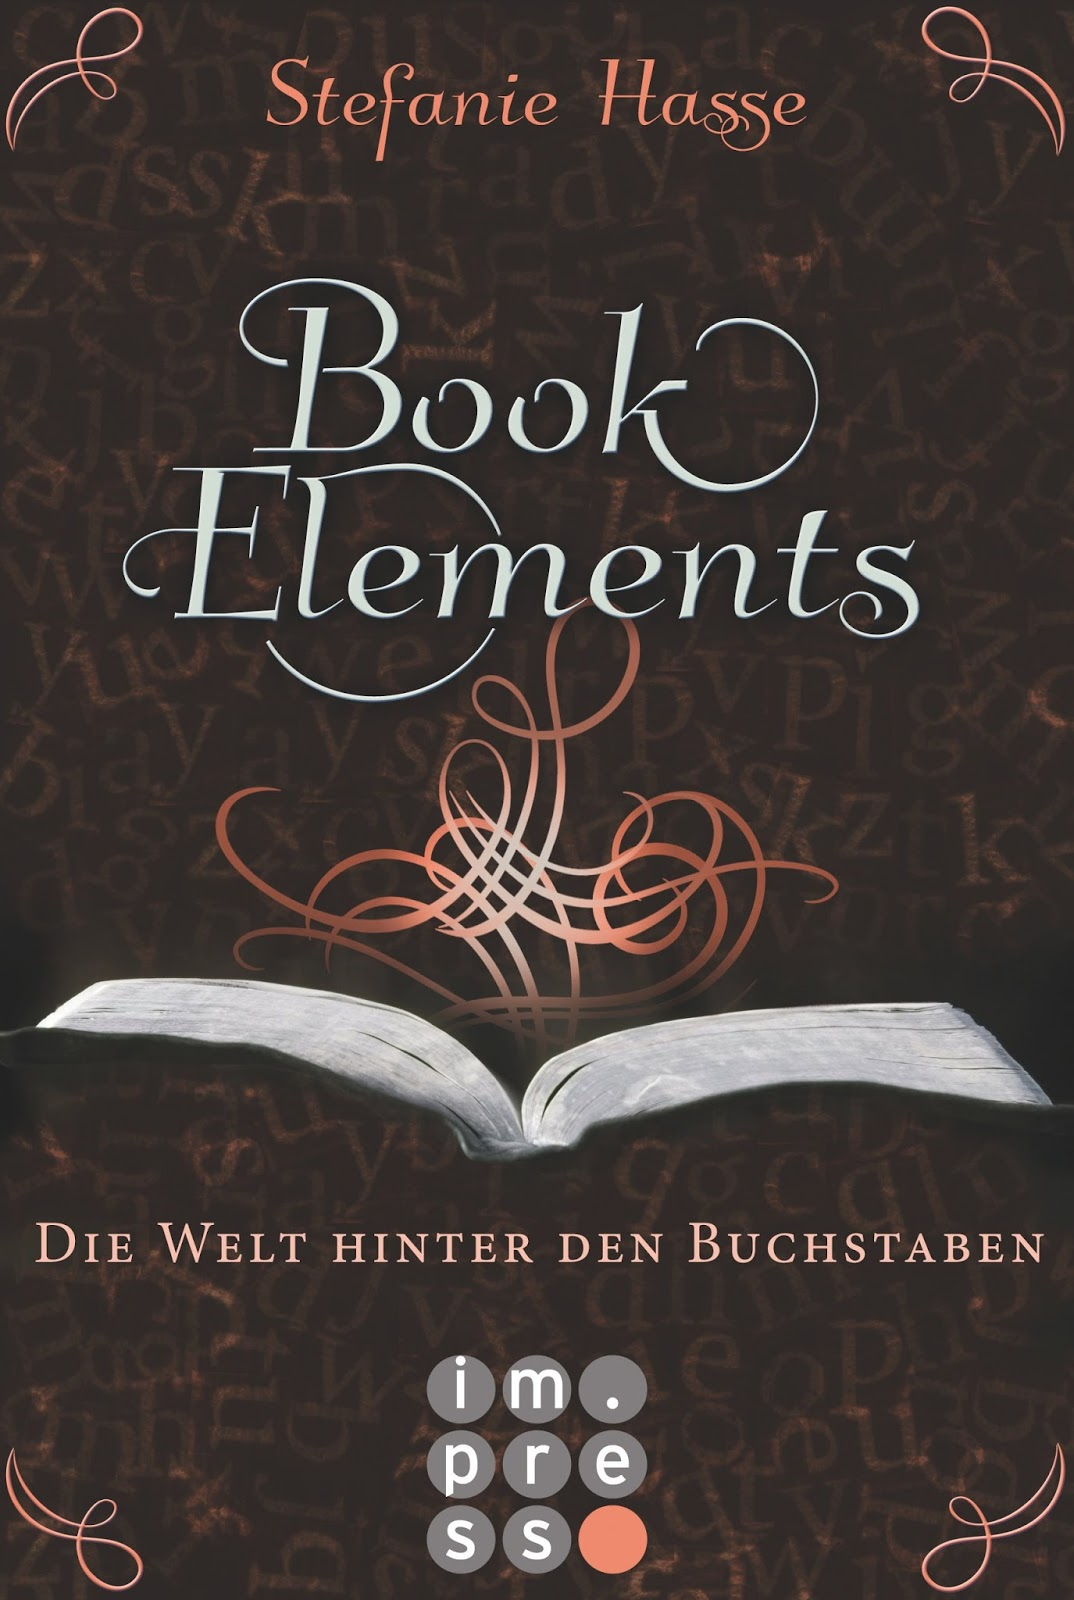 BookElements 2